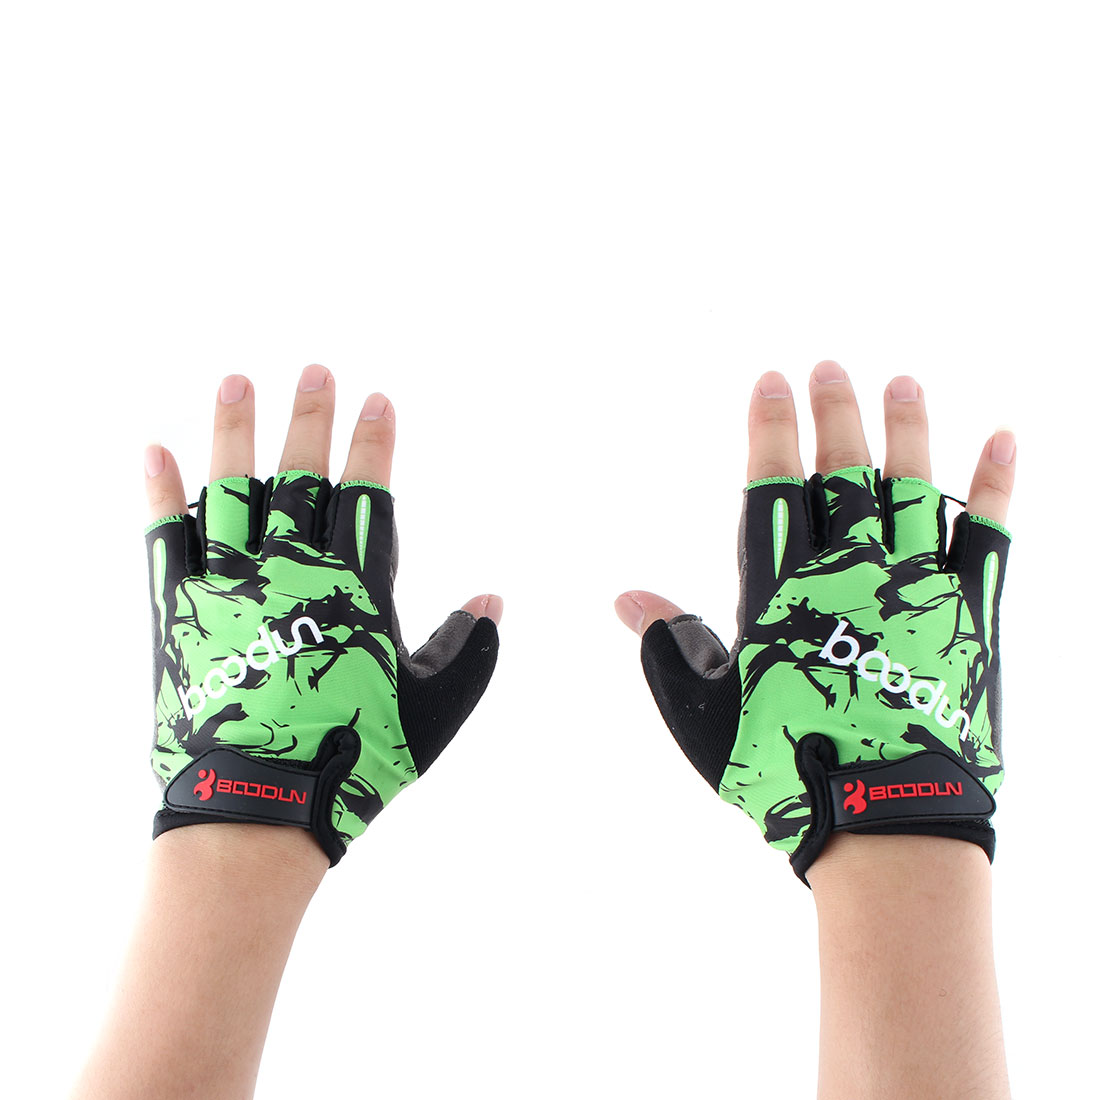 BOODUN Authorized Polyester Exercise Sports Gym Lifting Training Bodybuilding Protector Half Finger Fitness Gloves Green S Pair